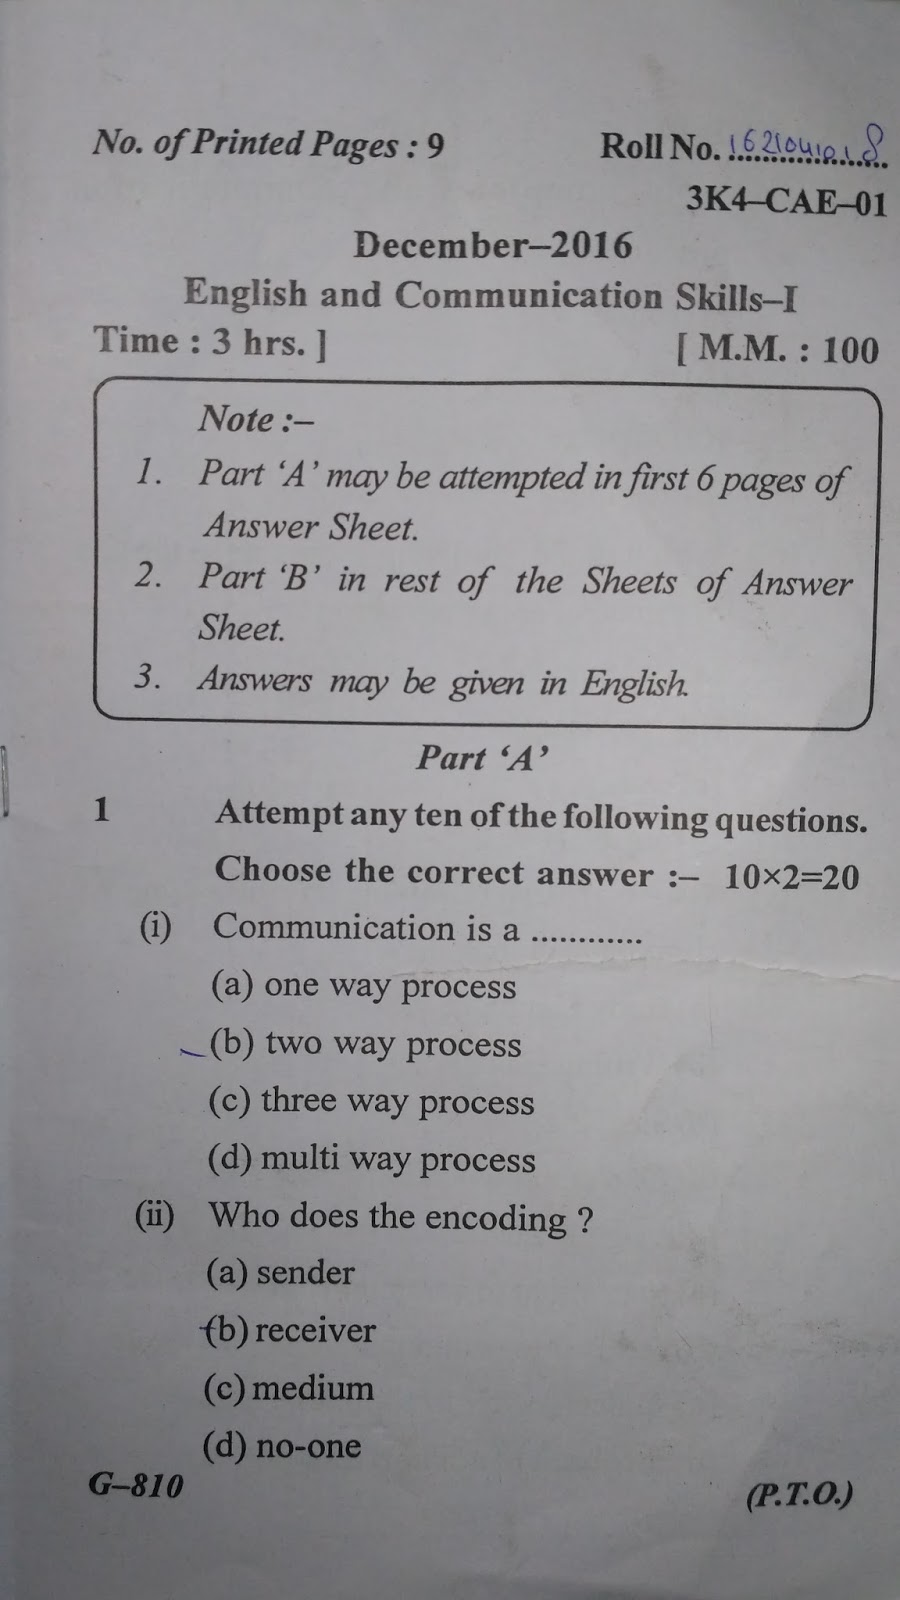 Question Paper of English and Communication Skills-I (December-2016) of Civil Engineering, 1st Semester, 1st Year, Polytechnic BTE Delhi